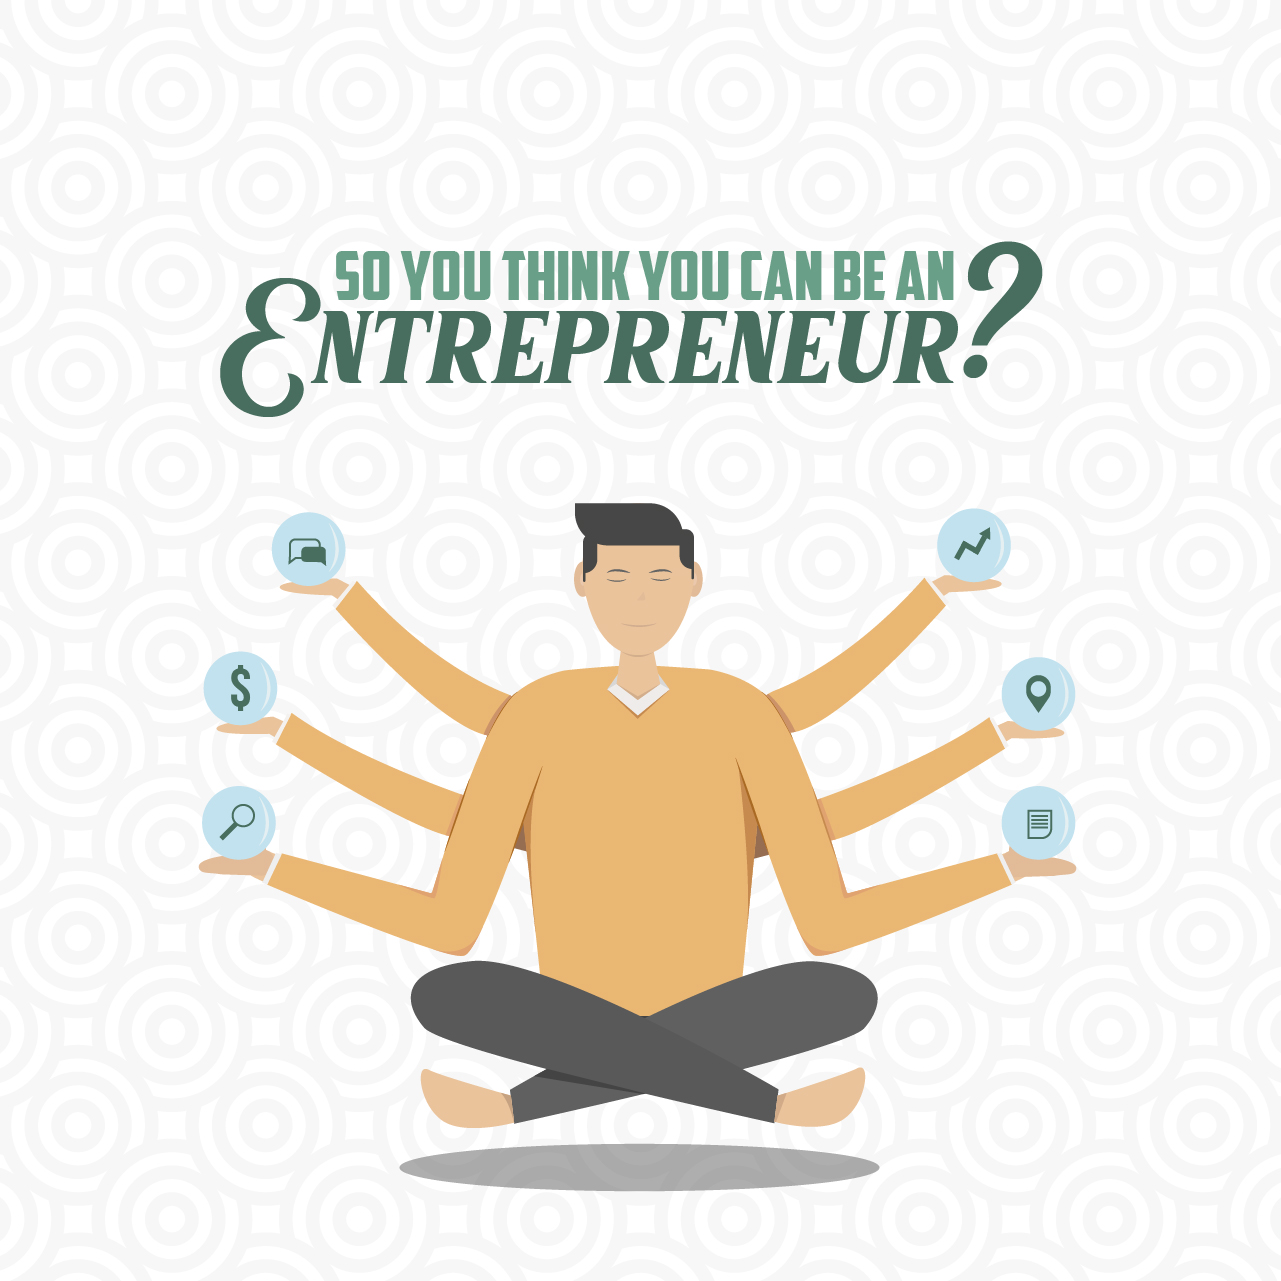 So You Think You Can Be An Entrepreneur?